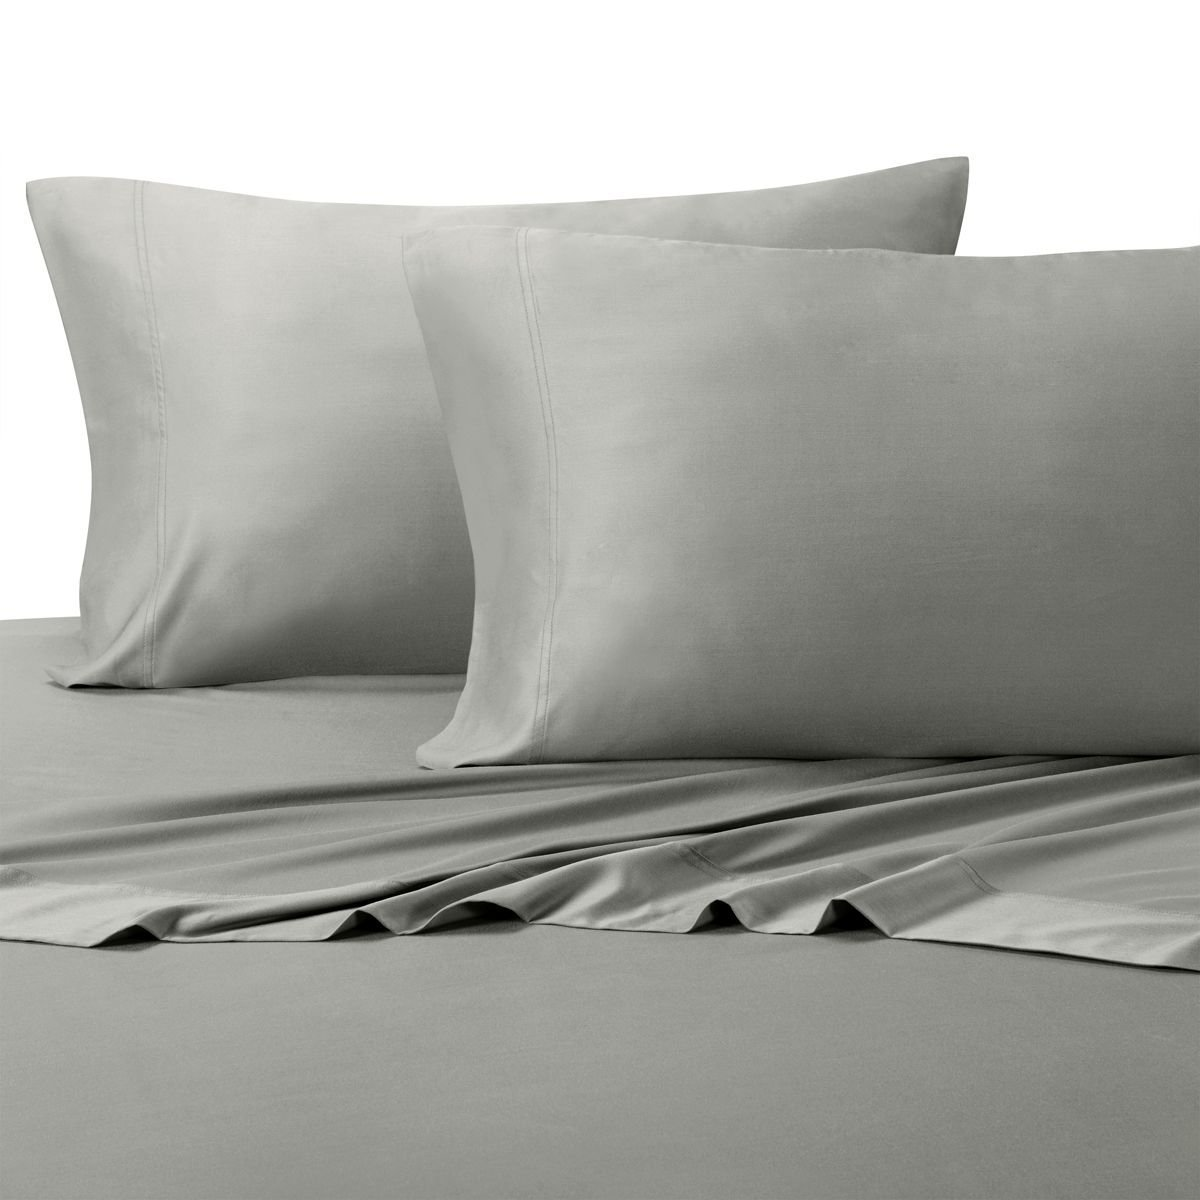 royal hotel 100 rayon from bamboo sheet set - Bamboo Sheets